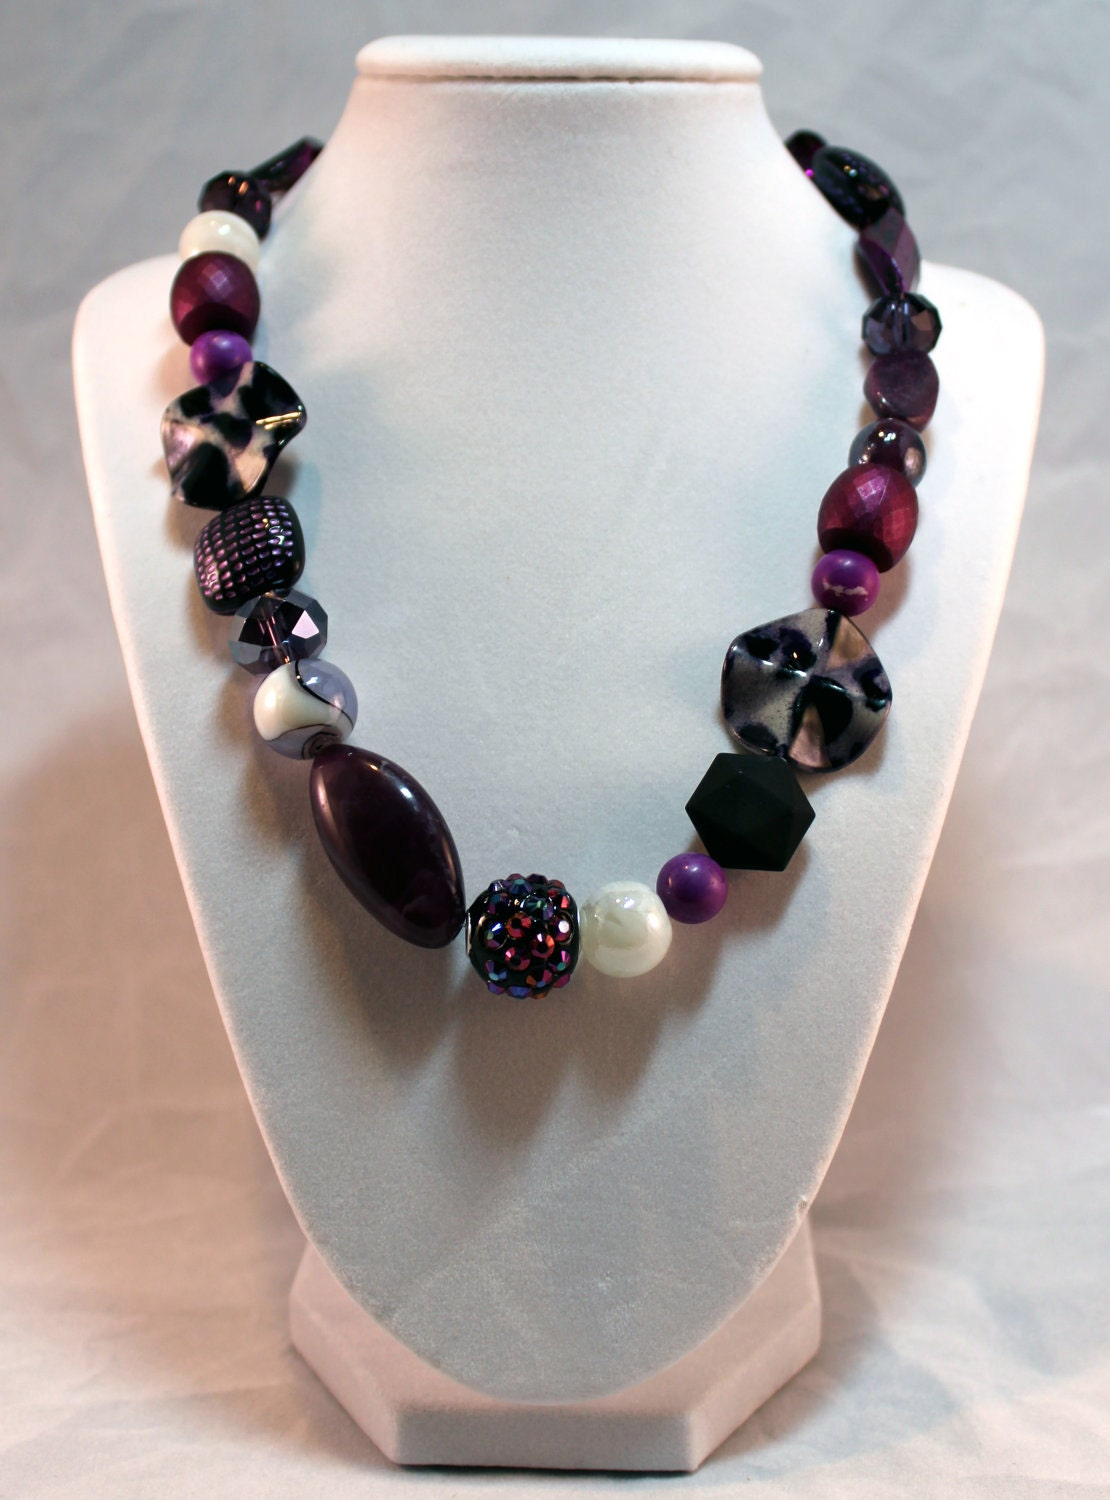 Mauve & Voilet Mixed beads Necklace